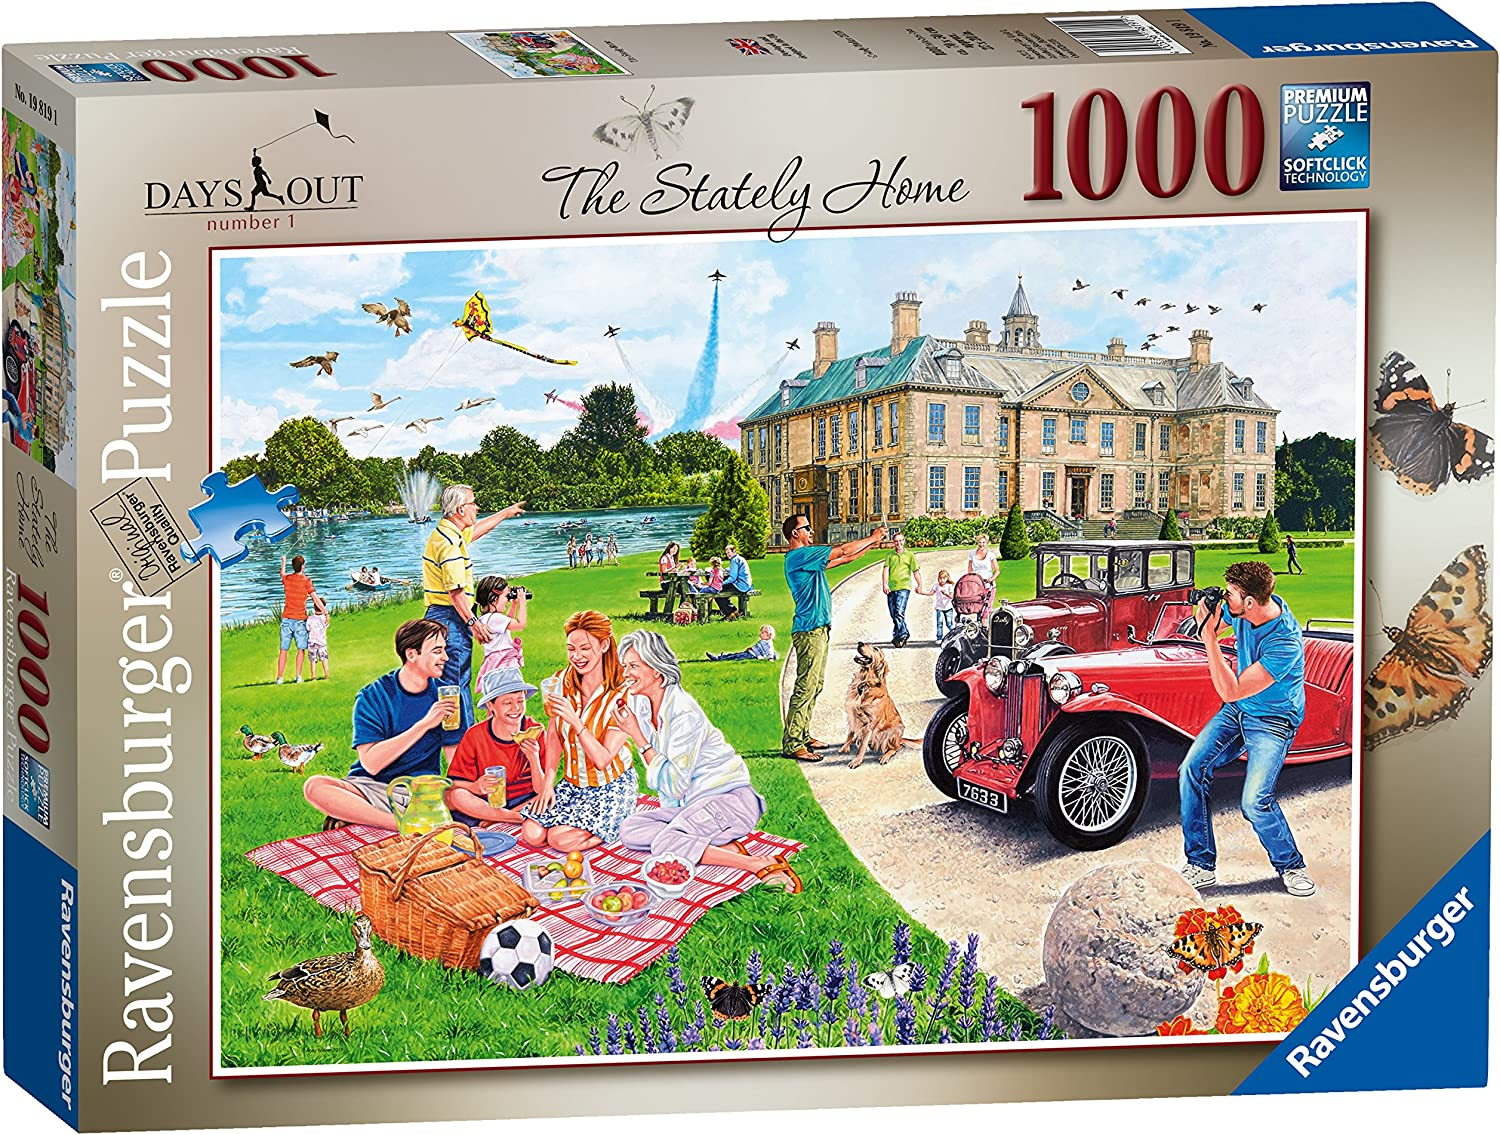 Ravensburger 19819 Days Out No.1 The Stately Home 1000 Pieces Jigsaw Puzzle